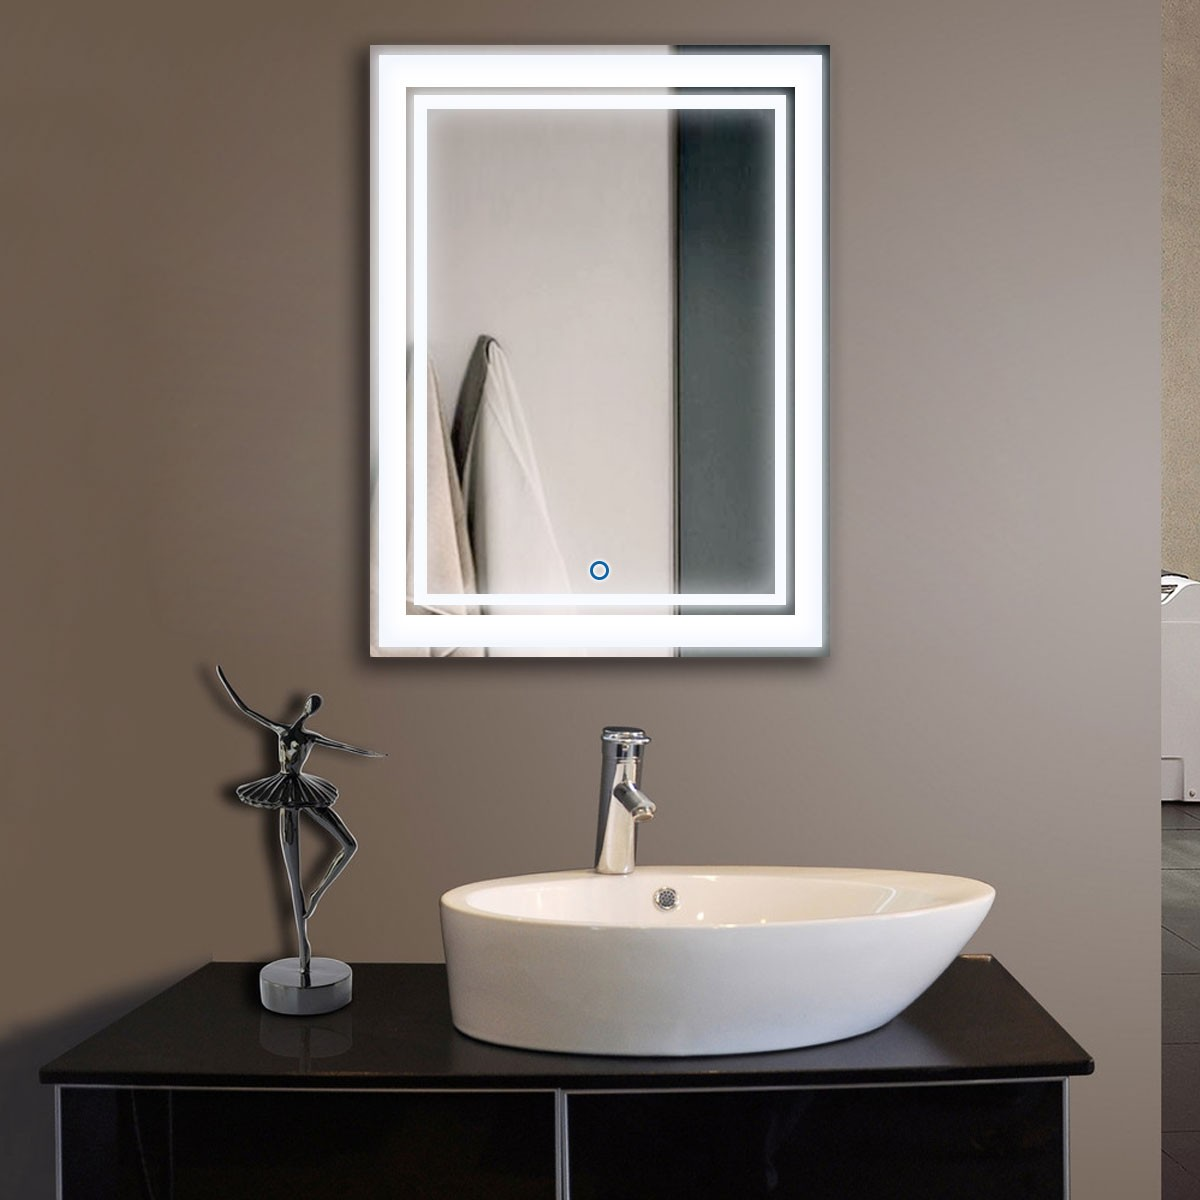 24 x 32 In Vertical LED Backlit Bathroom Mirror, Touch Button (DK-OD-CK160)